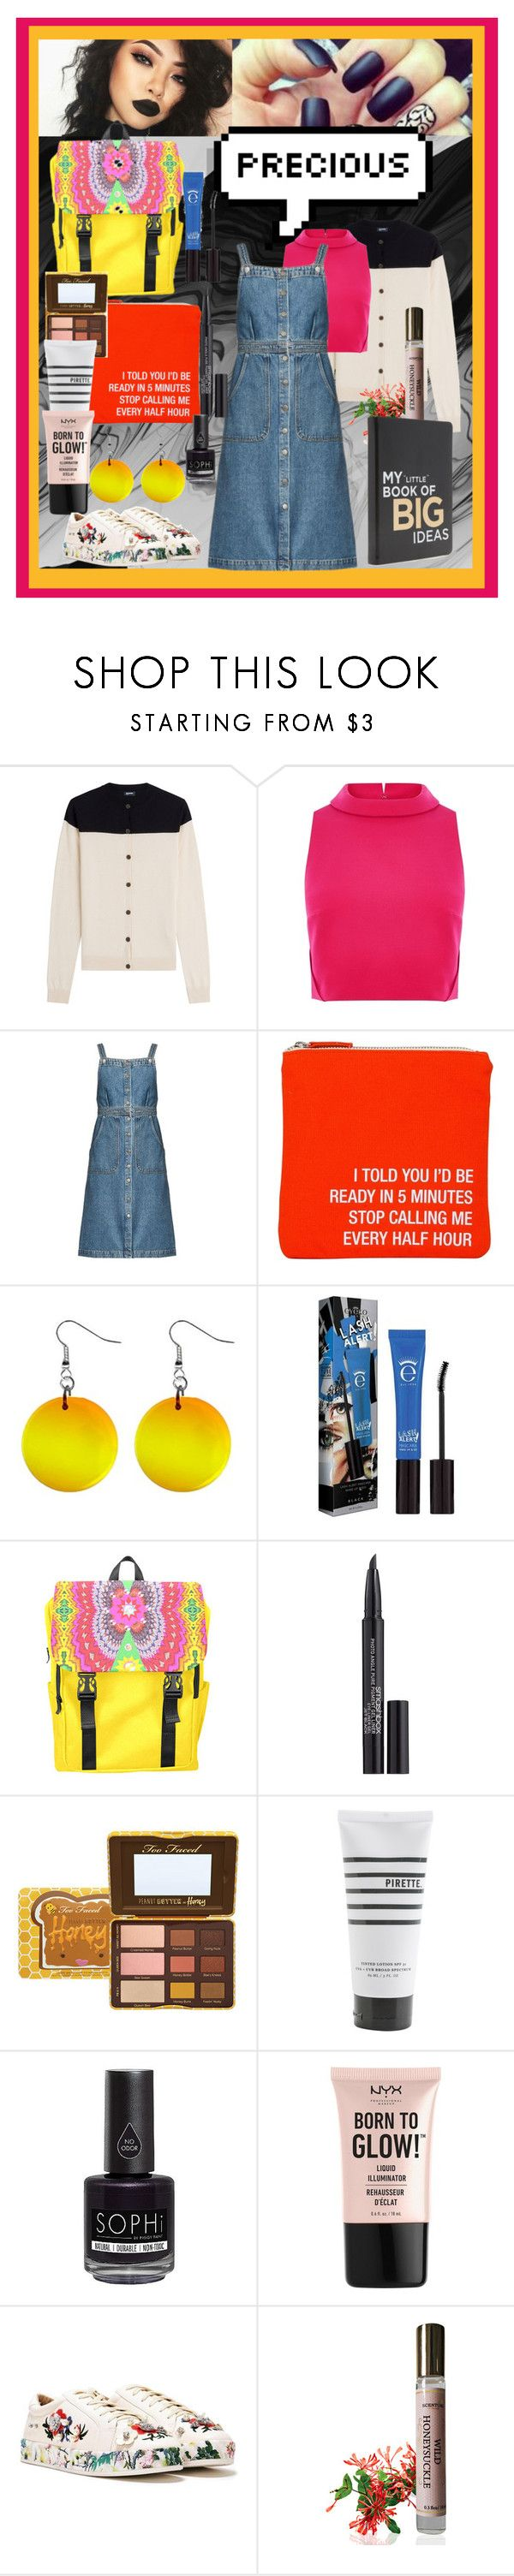 """""""Precious"""" by dudettelucy ❤ liked on Polyvore featuring Jil Sander Navy, Coast, M.i.h Jeans, About Face Designs, Eyeko, Smashbox, Pirette, Piggy Paint, NYX and Nasty Gal"""